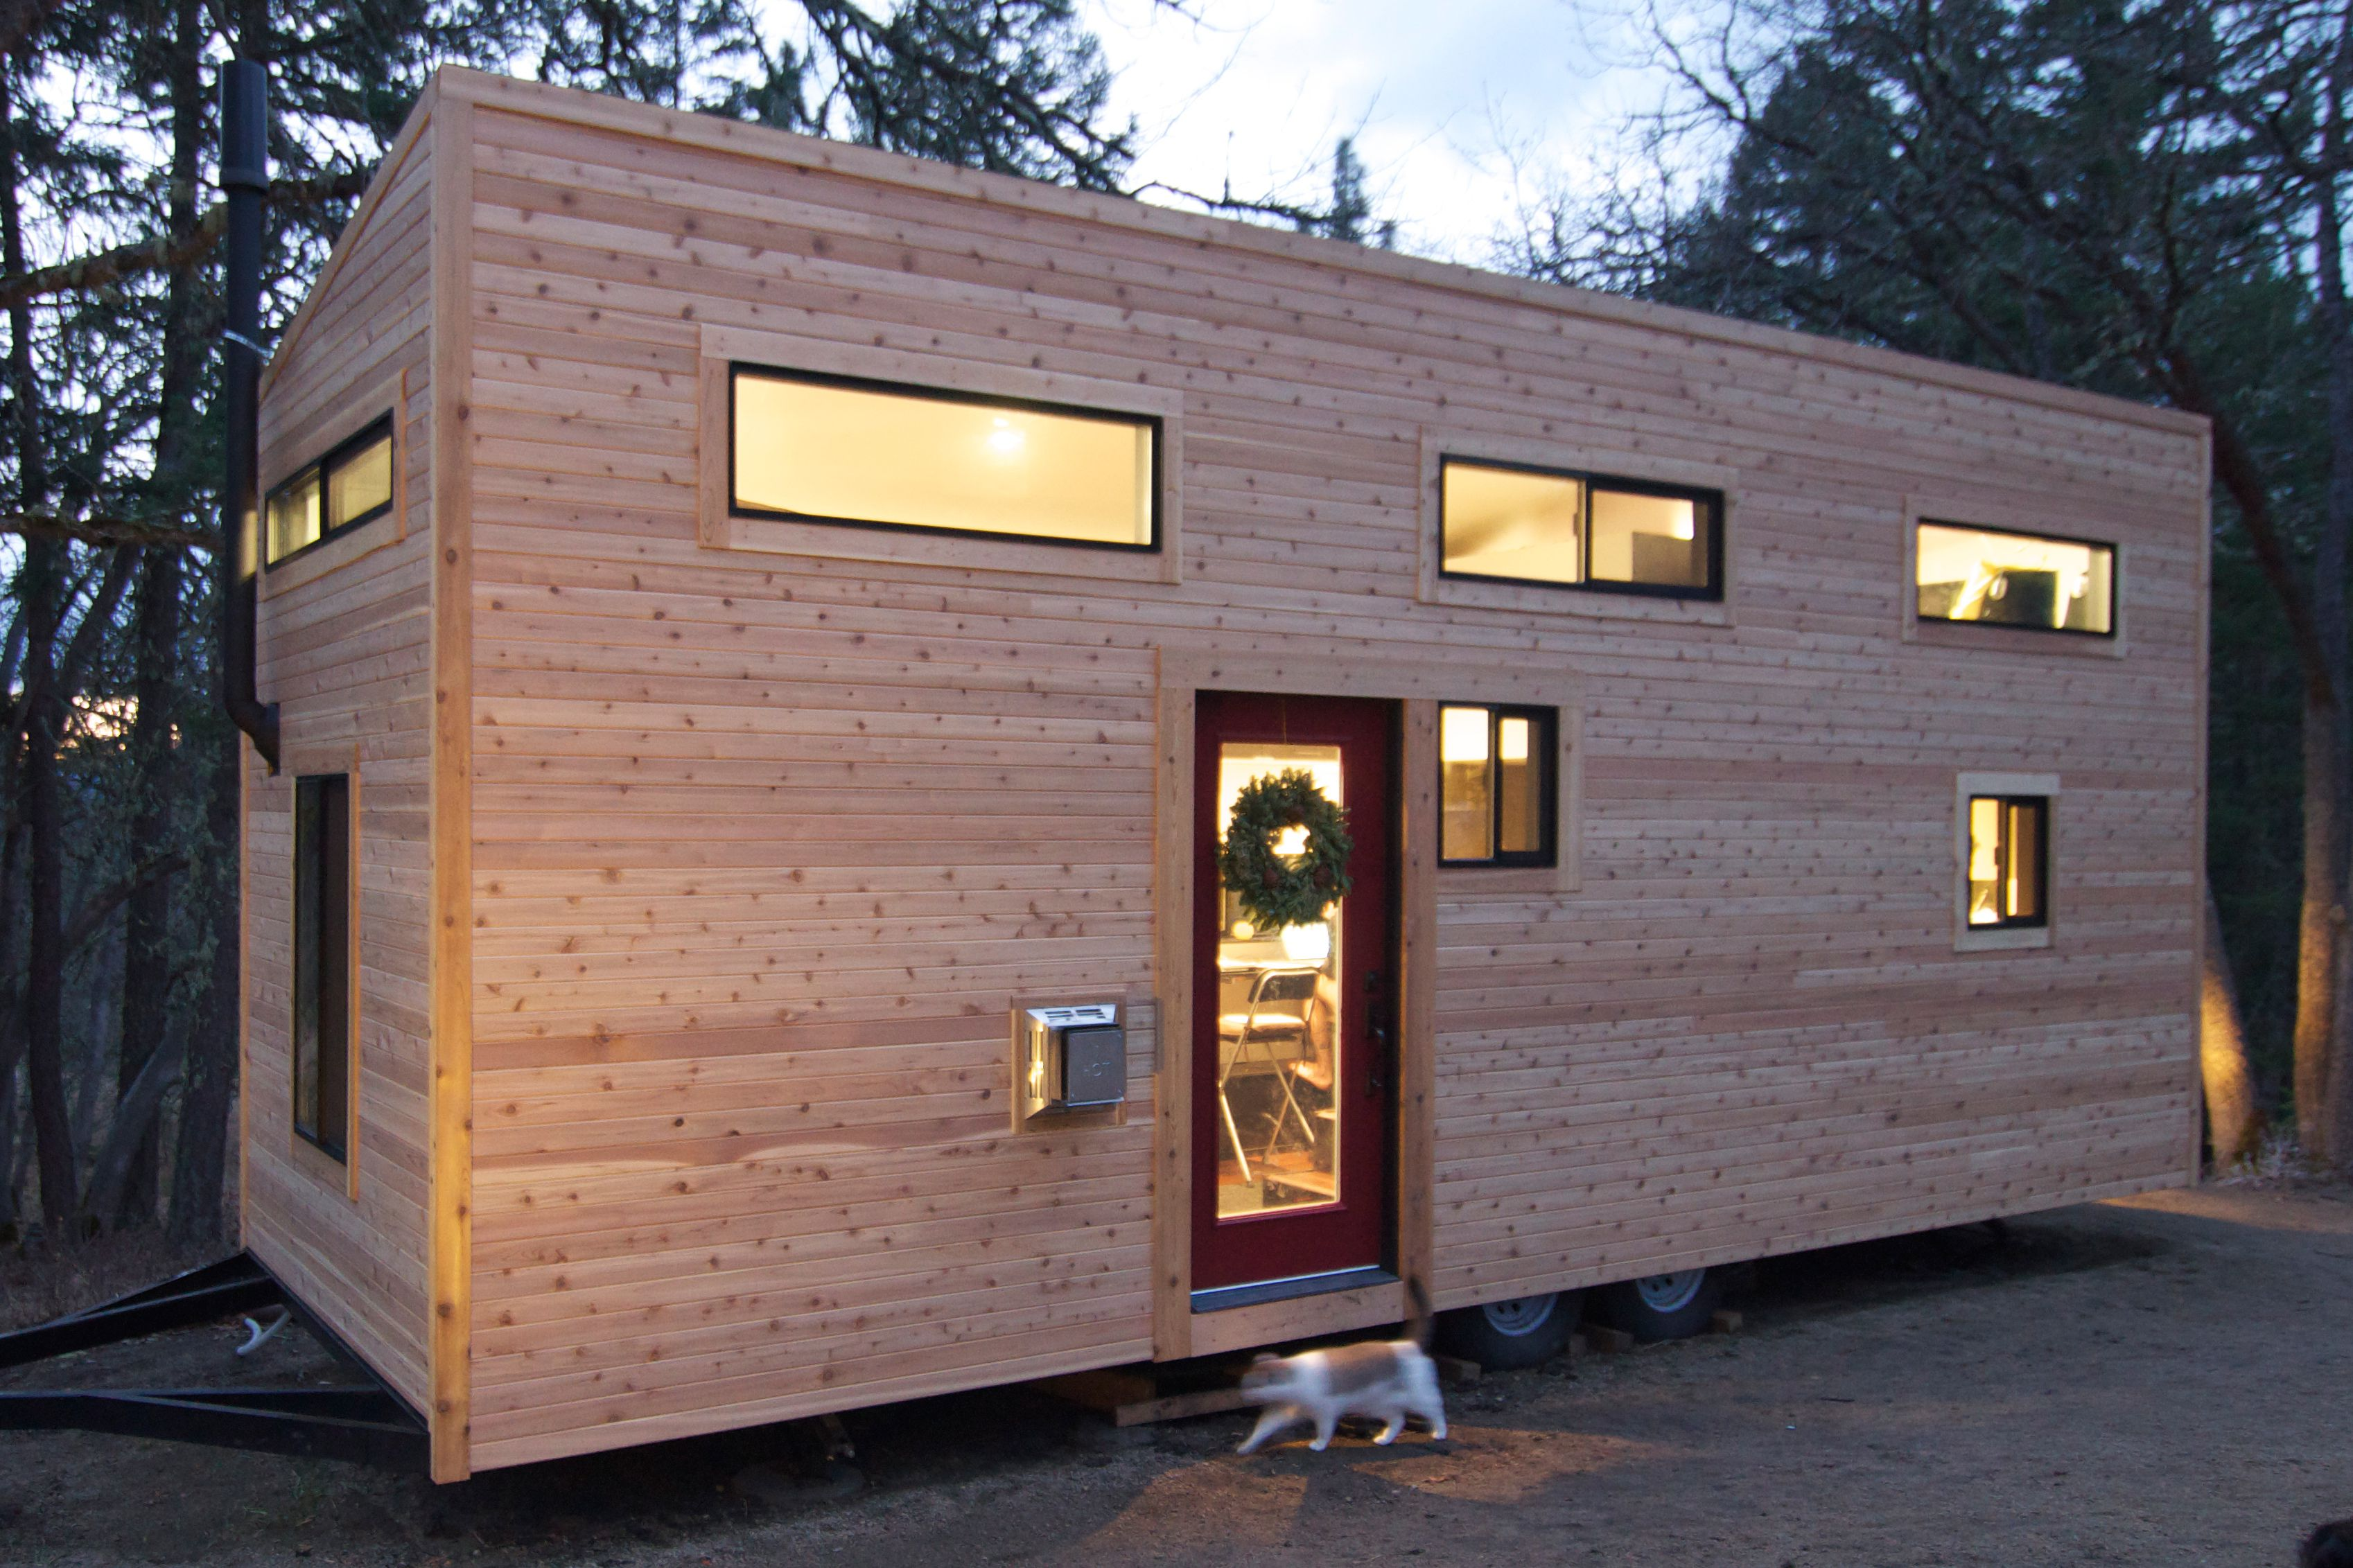 hOME A Tiny House That Lives Cost to Build